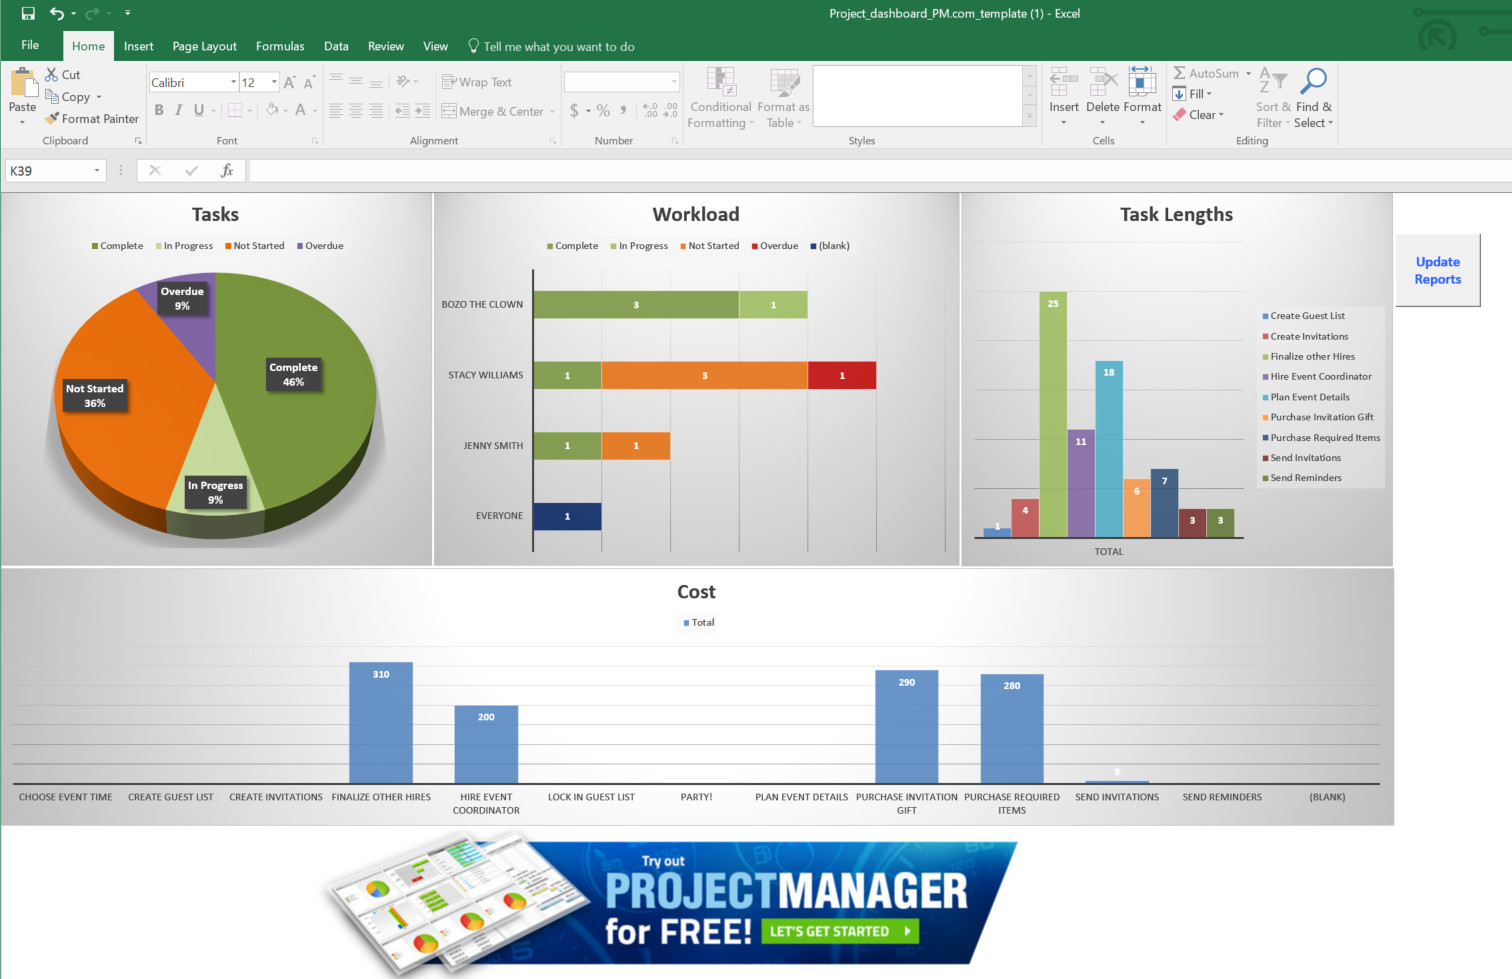 Project Spreadsheet Template Inside Guide To Excel Project Management  Projectmanager